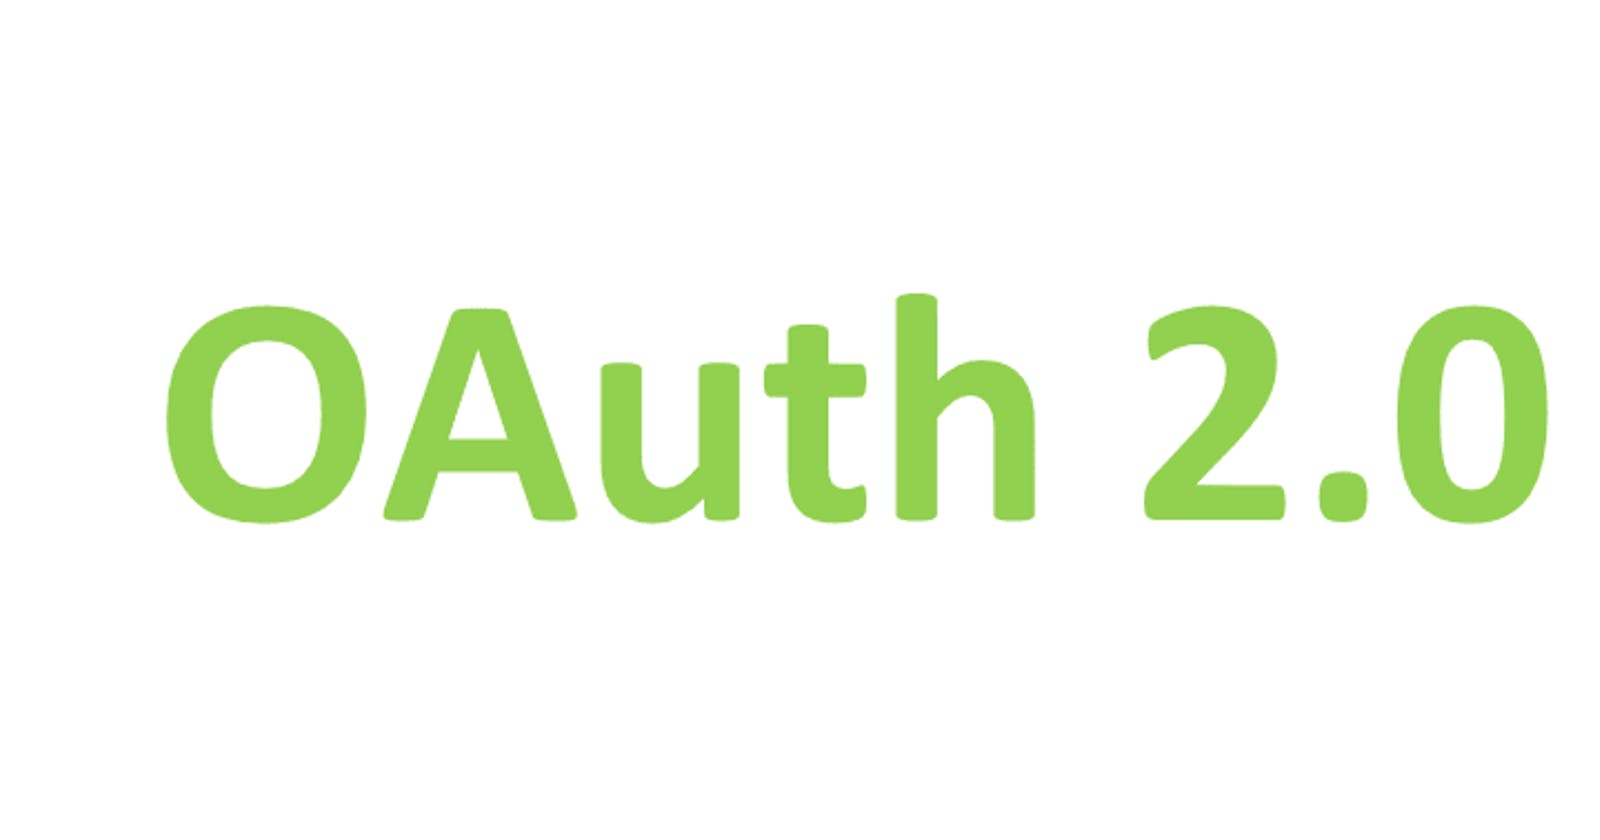 An introduction to OAuth 2.0